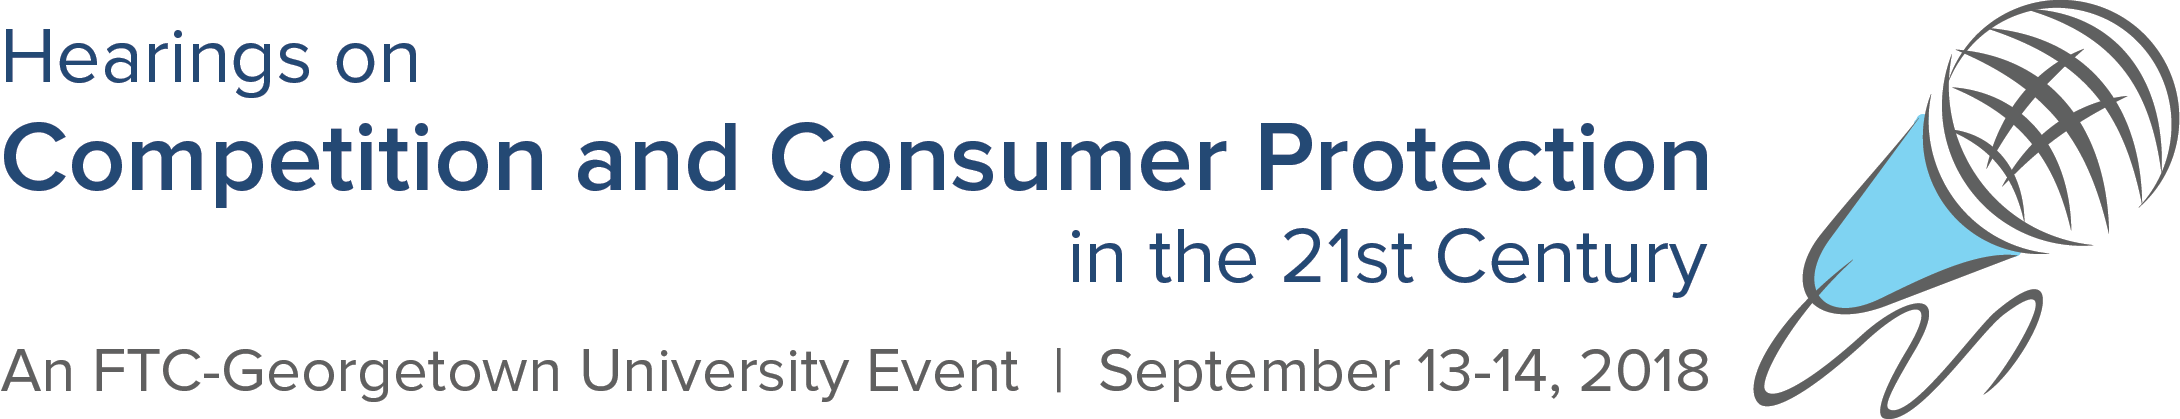 Hearing #1 On Competition and Consumer Protection in the 21st Century, September 13-14, 2018